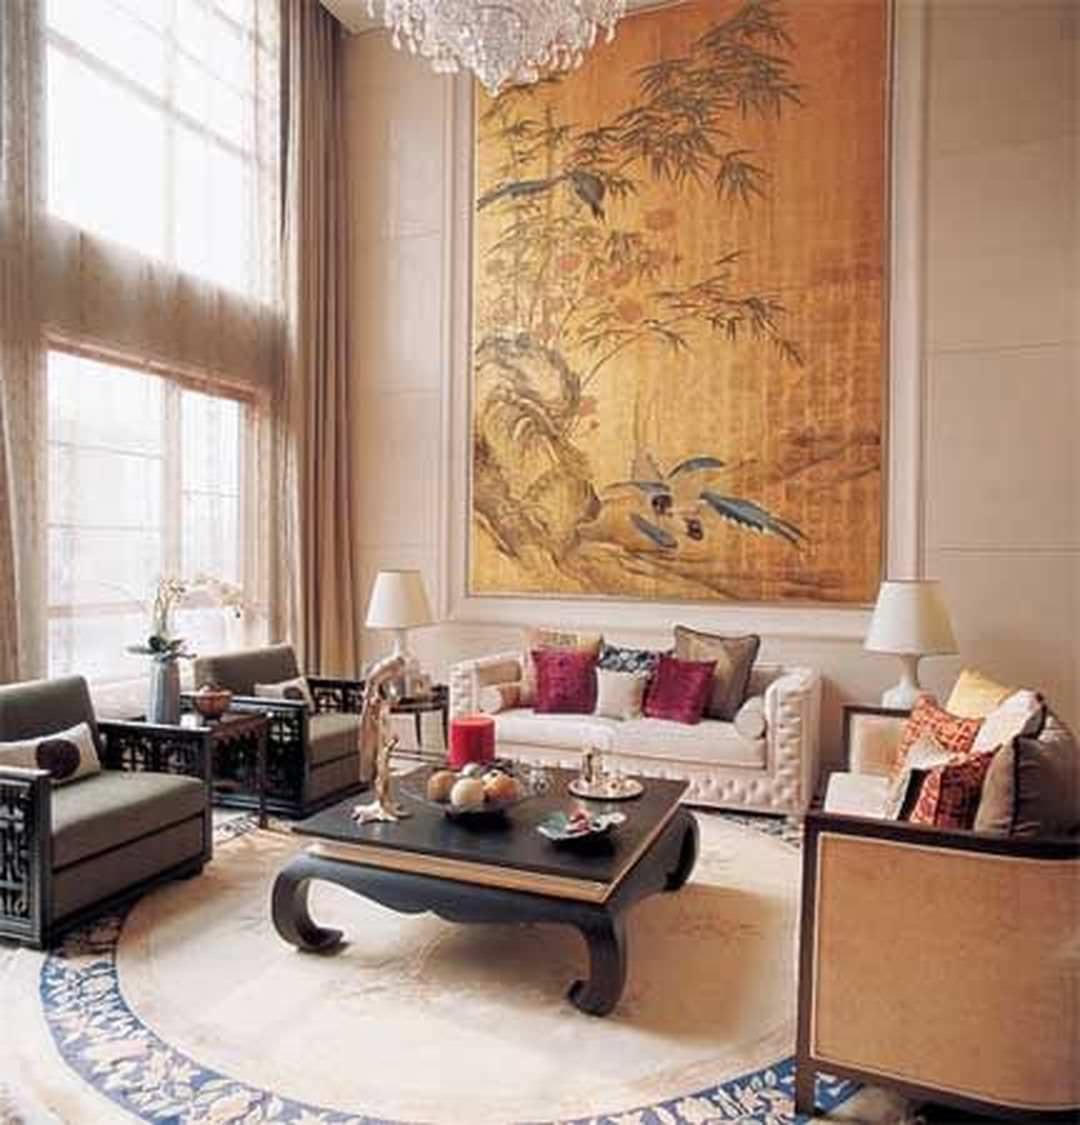 Ordinaire 23 Asian Inspired Living Room Decor Https://decomagz.com/2017/